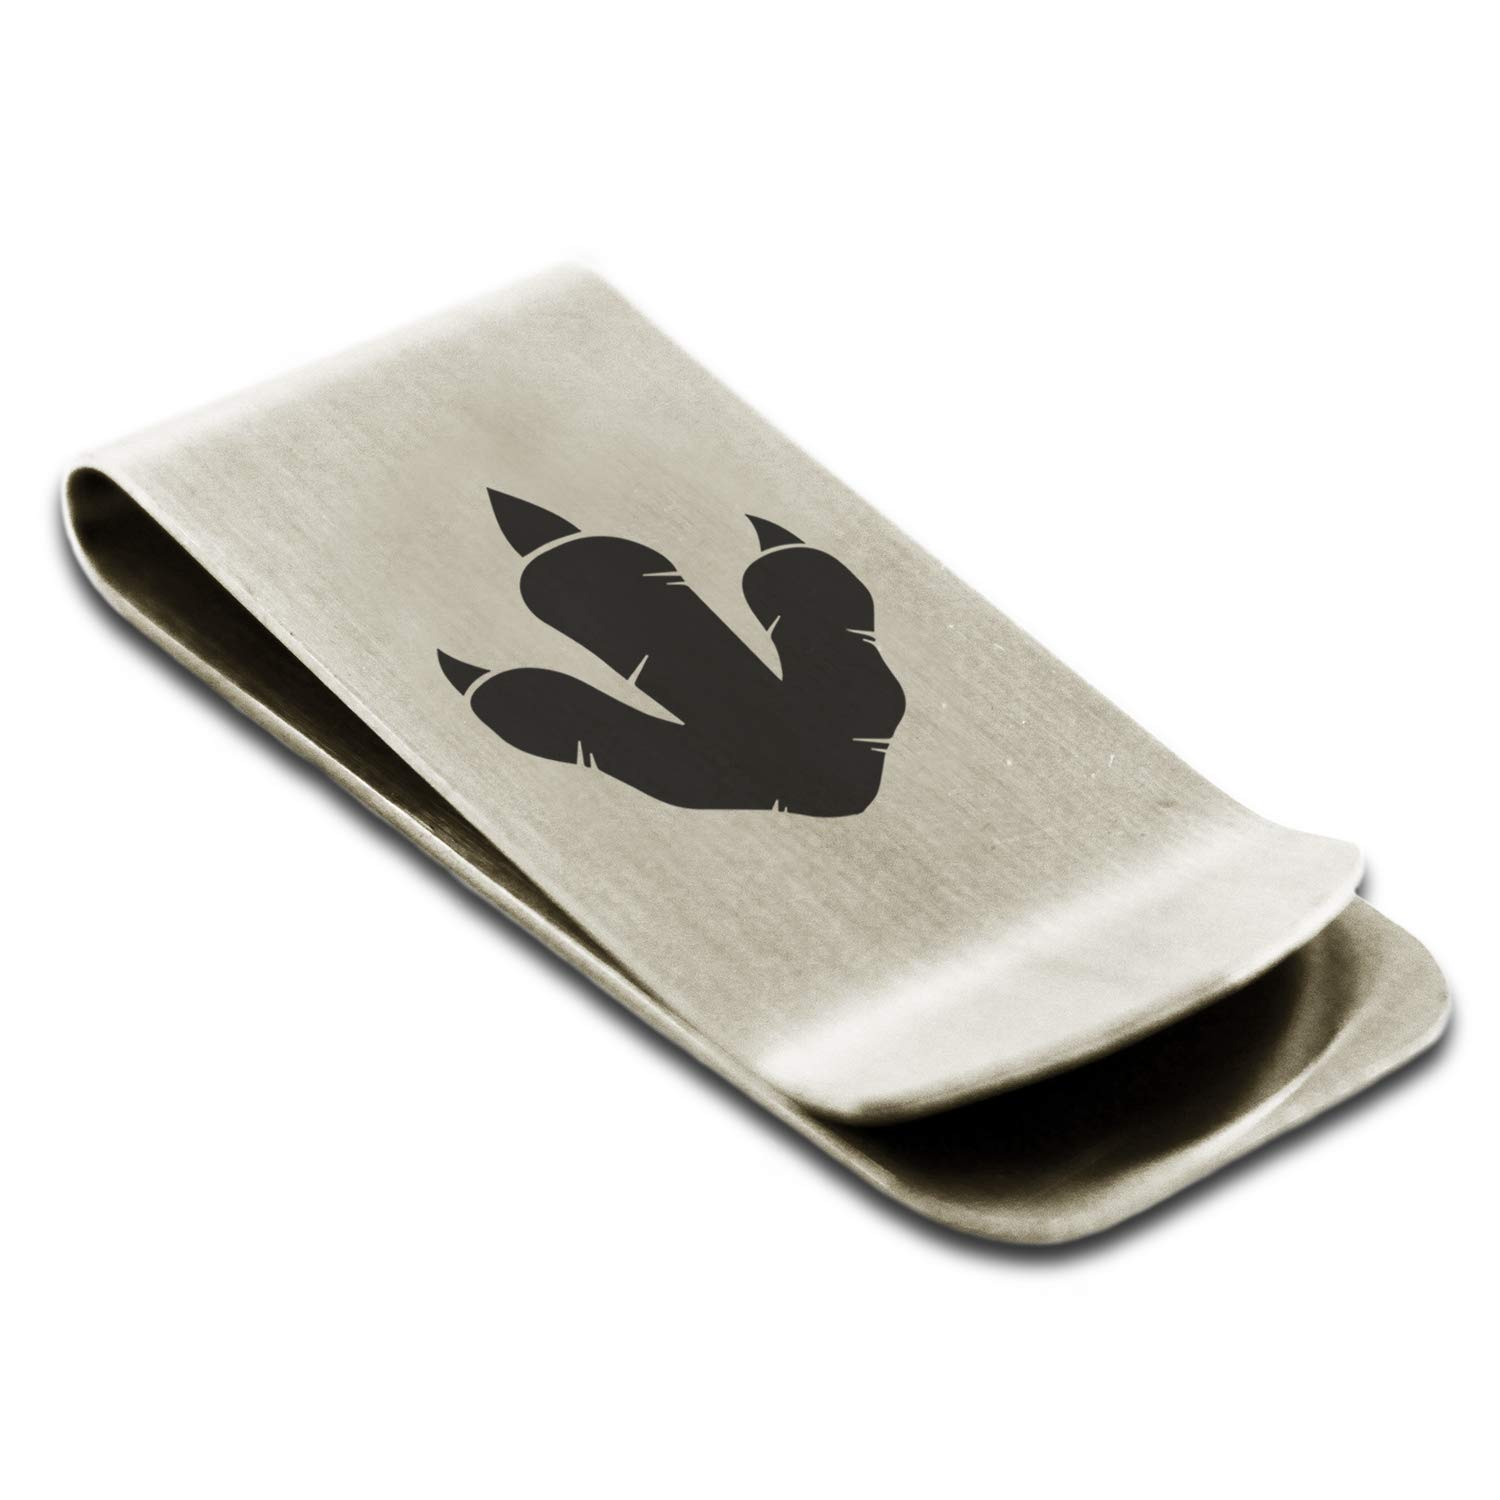 Stainless Steel Tyrannosaurus Rex Footprint Money Clip Credit Card Holder